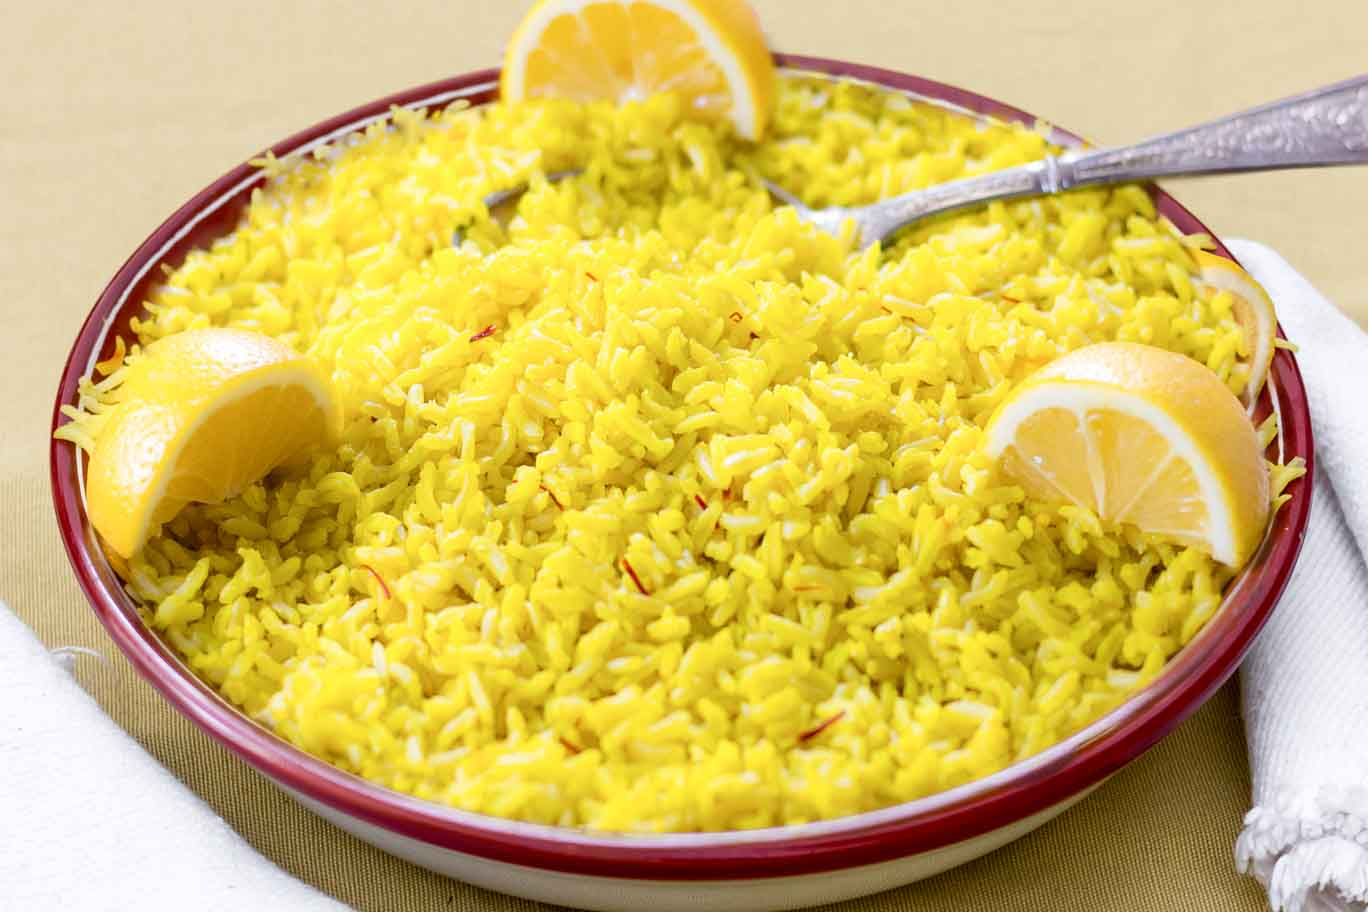 Shallow red-rimmed bowl with Saffron & Lemon Infused Basmati Rice garnished with 3 lemon wedges